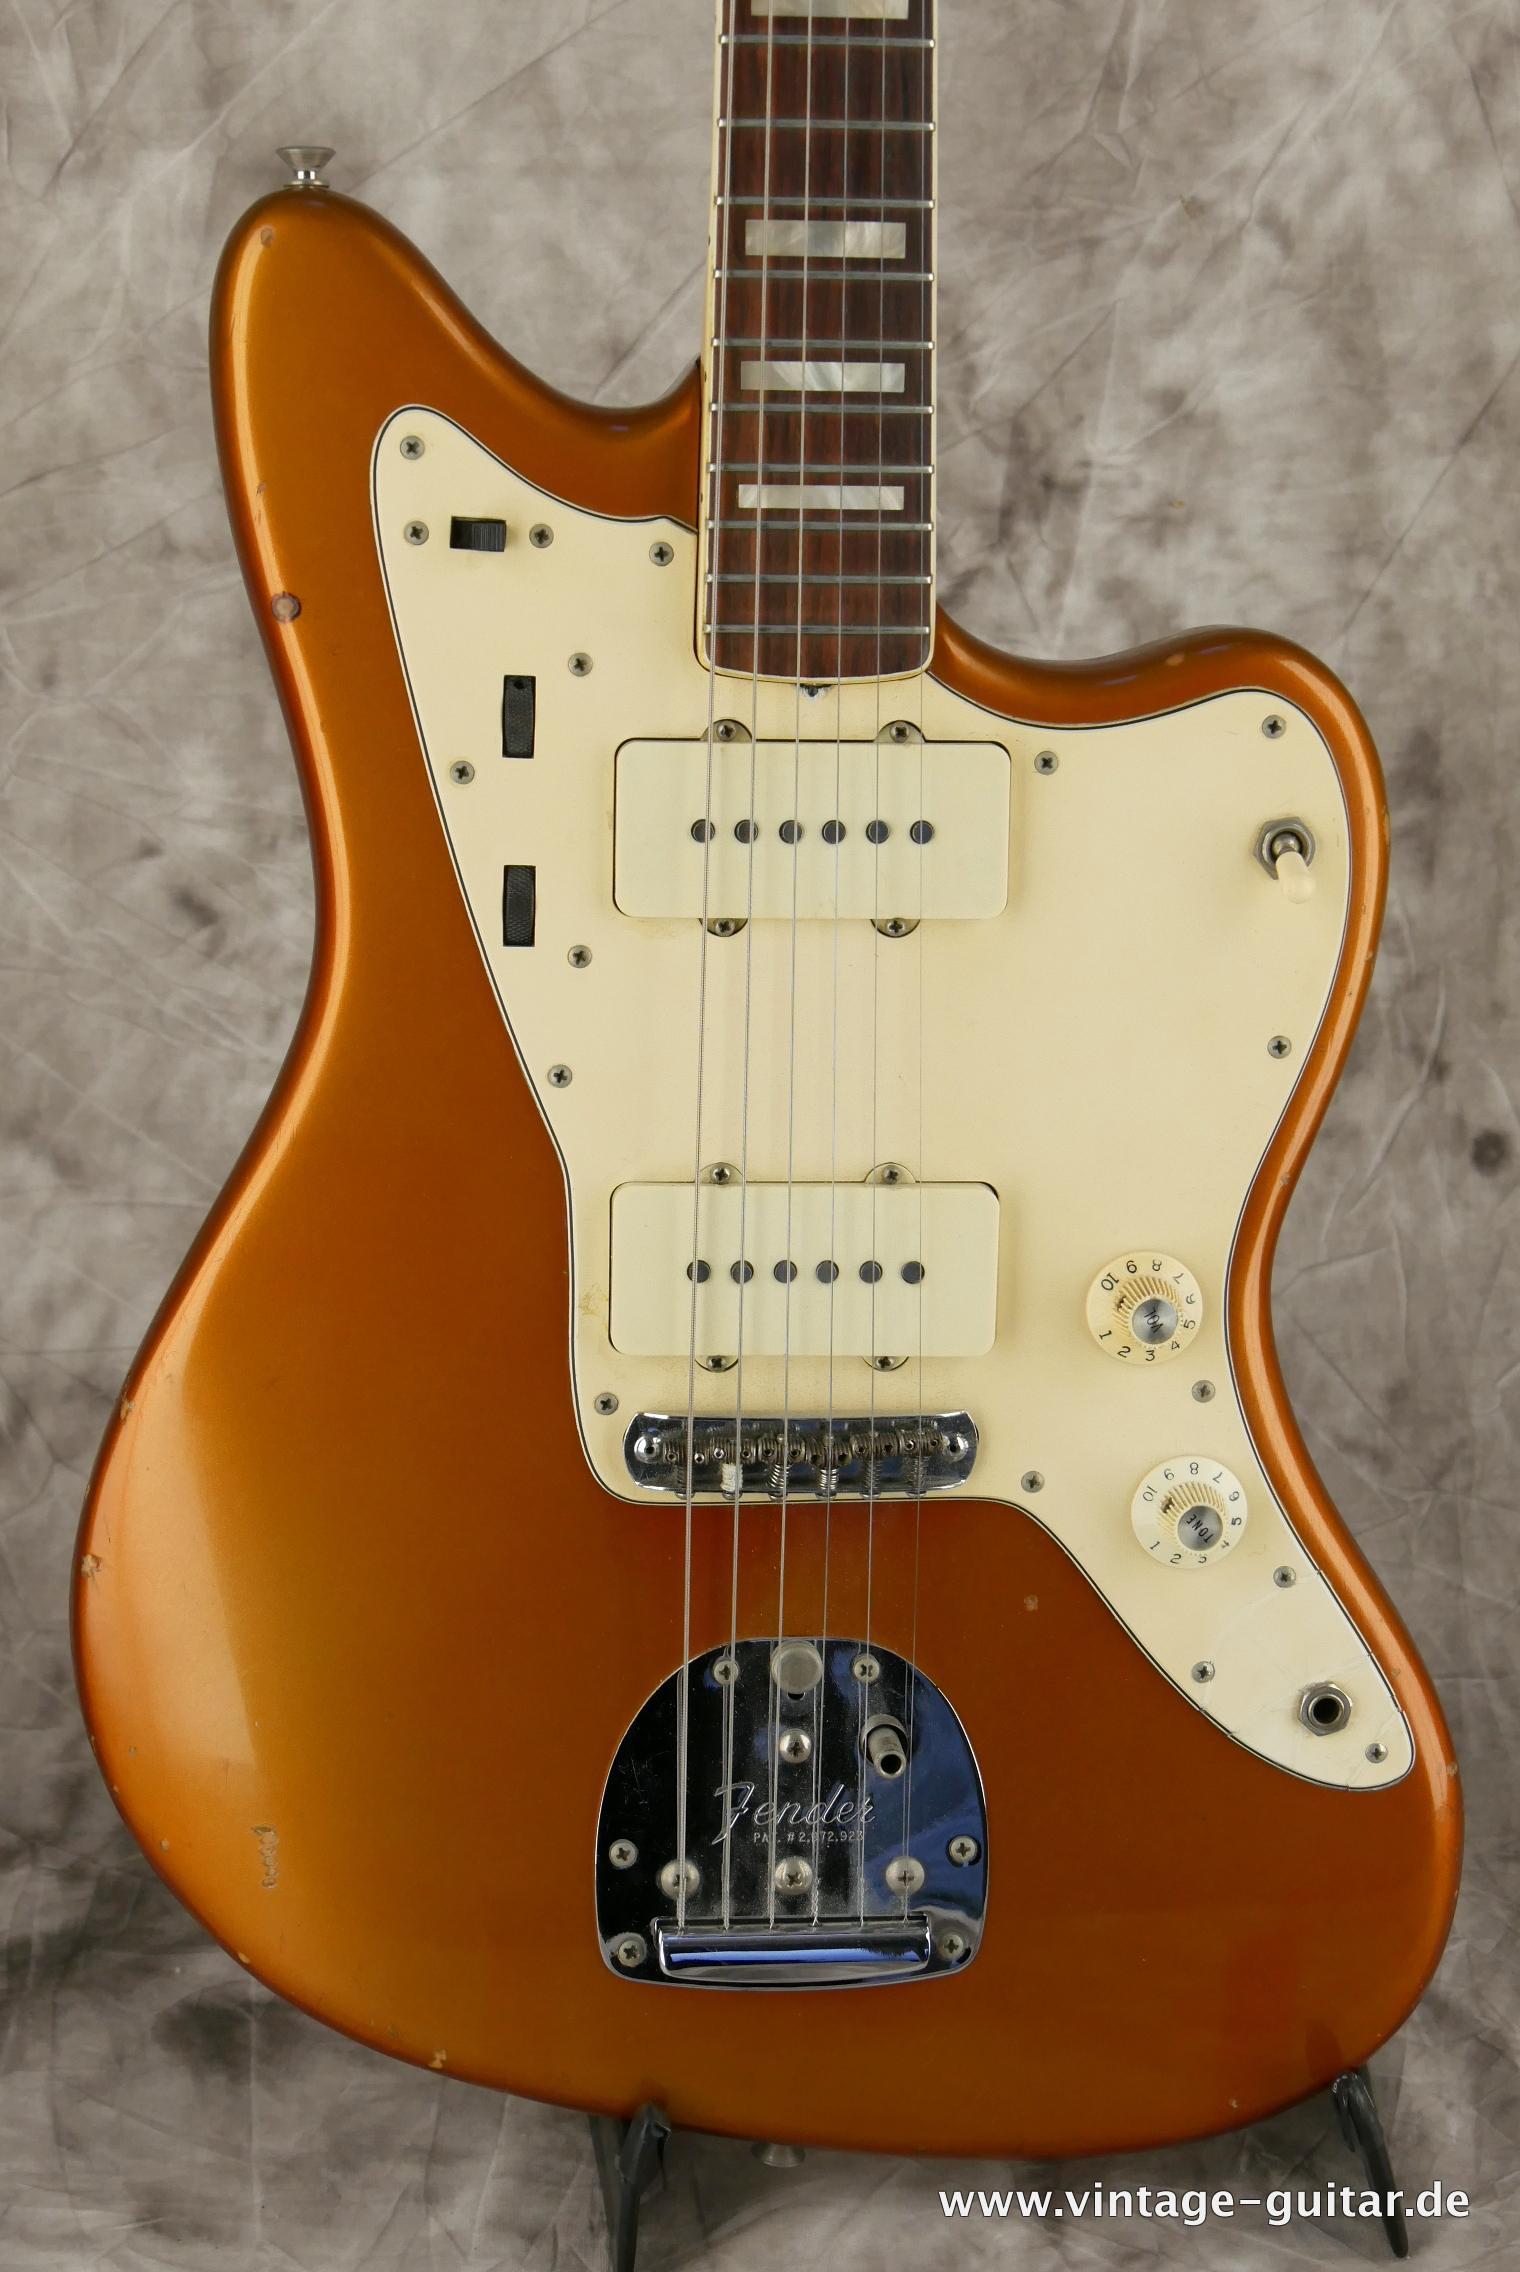 img/vintage/3230/Fender-Jazzmaster-1973-candy-apple-red-002.JPG